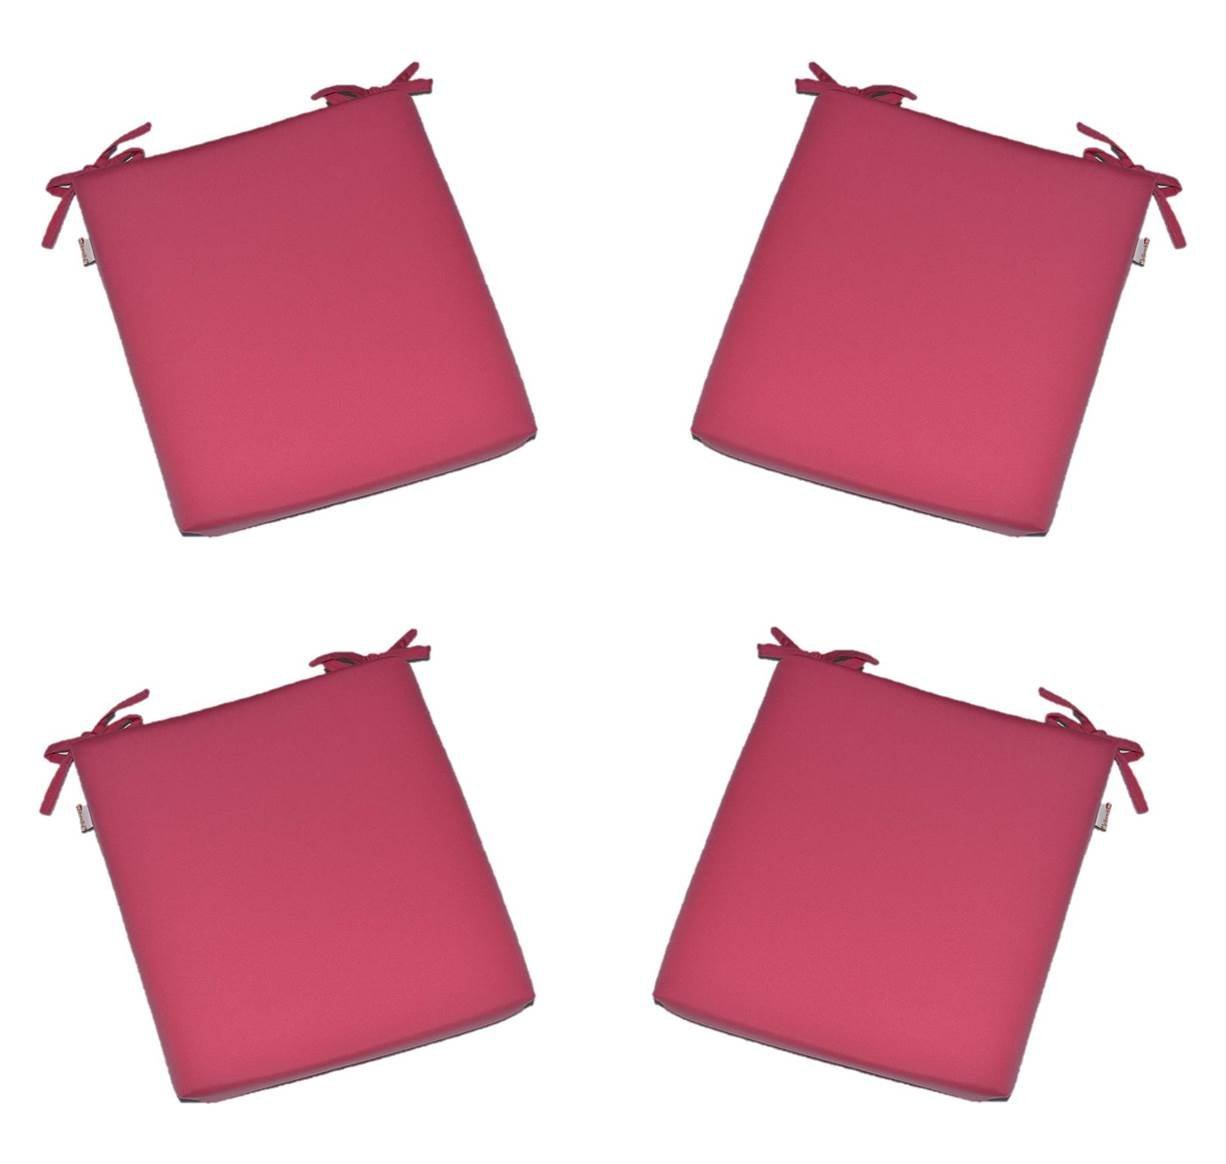 """Set of 4 - Universal 2"""" Thick Foam Seat Cushion with Ties for Dining / Patio Chair - Sunbrella Canvas Hot Pink - Choose Size (22"""" x 21"""")"""